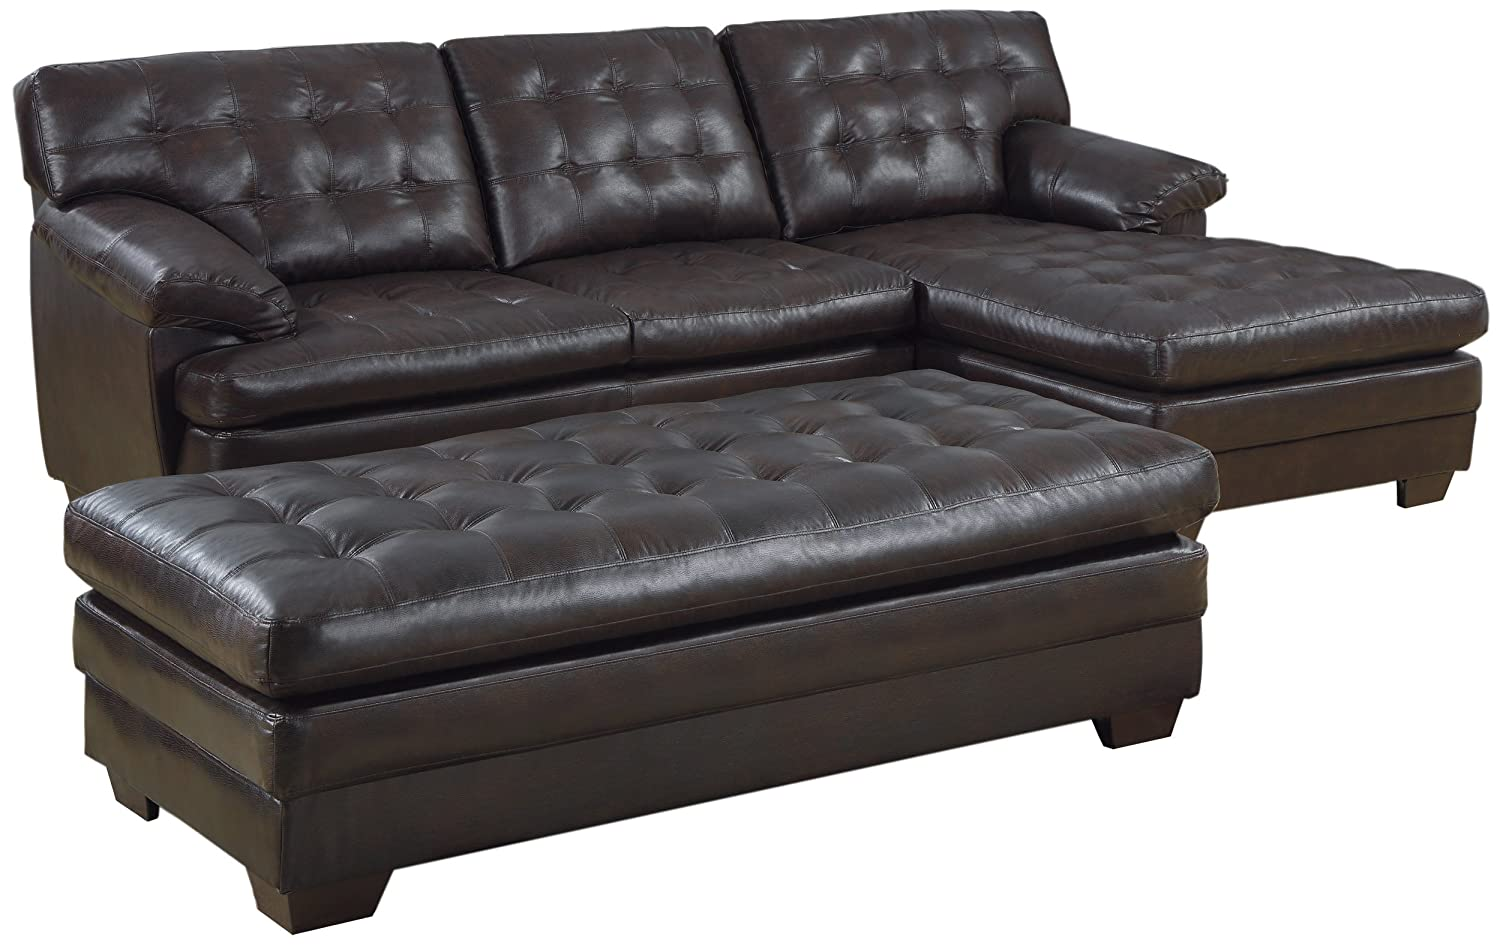 Homelegance 9739 Channel-Tufted 2-Piece Sectional